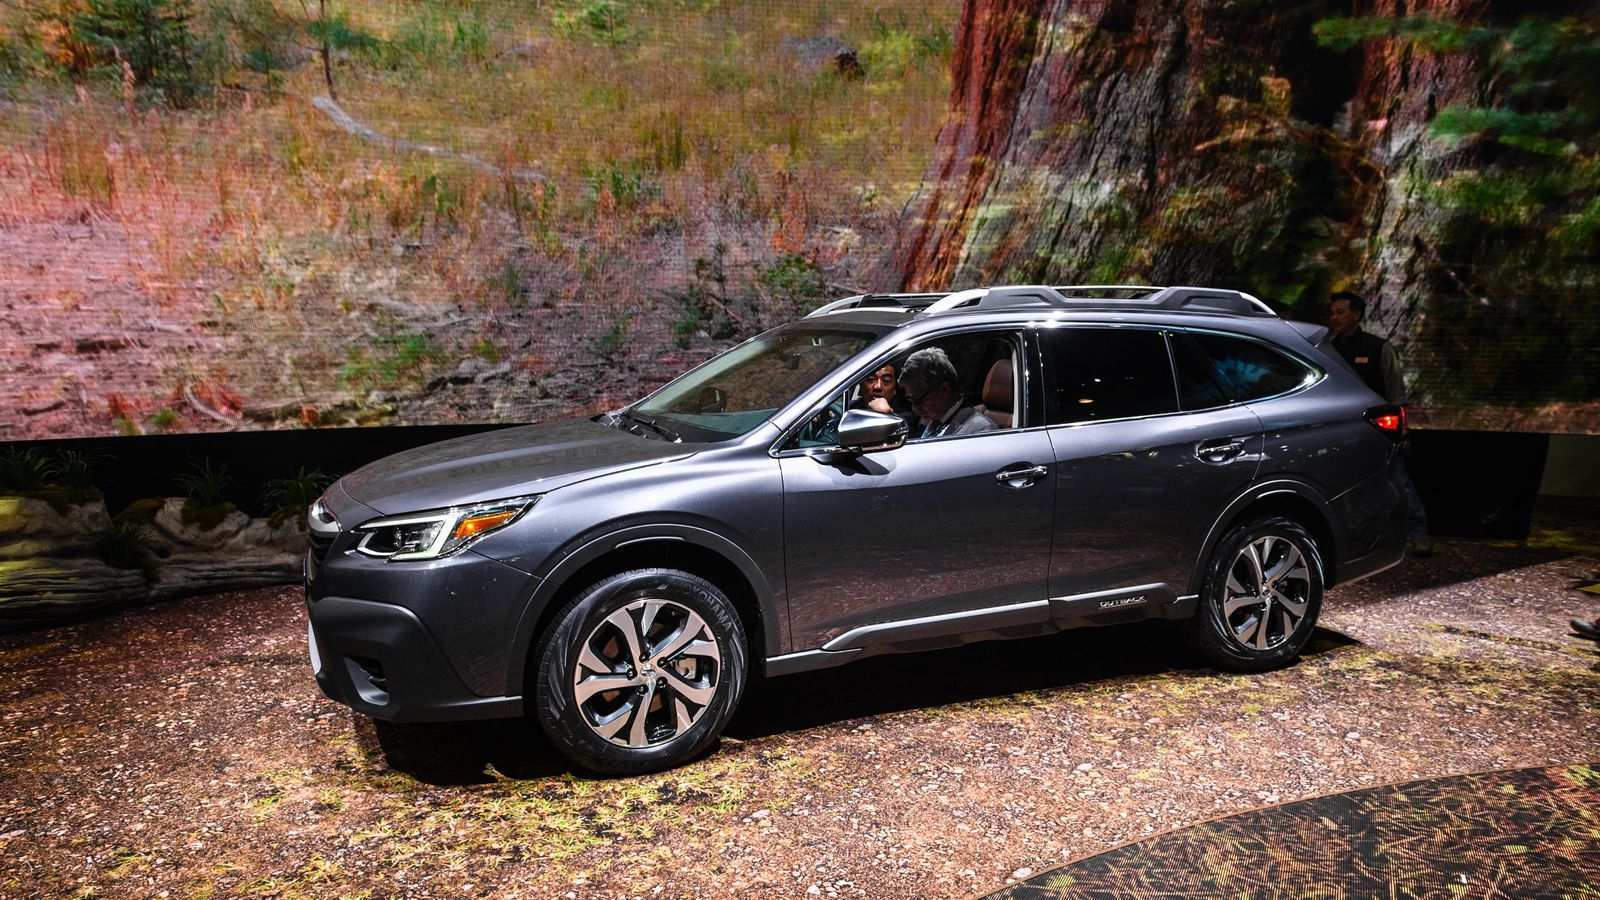 87 All New All New Subaru Outback 2020 Exterior